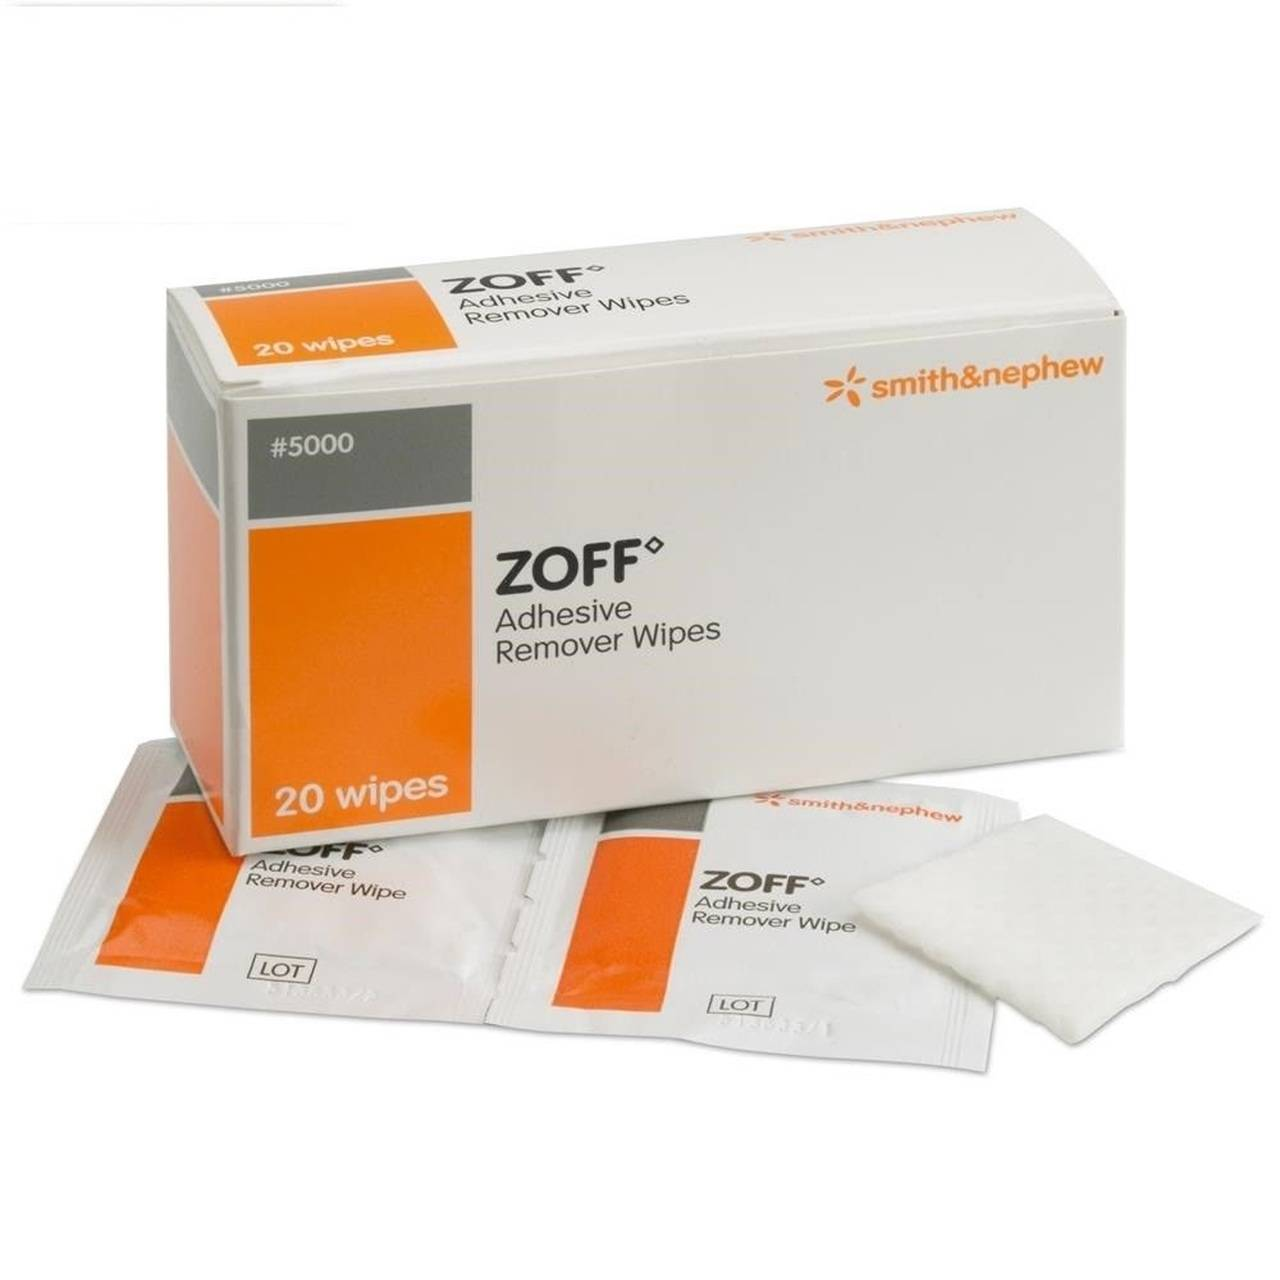 Zoff 20 Adhesive Remover Wipes